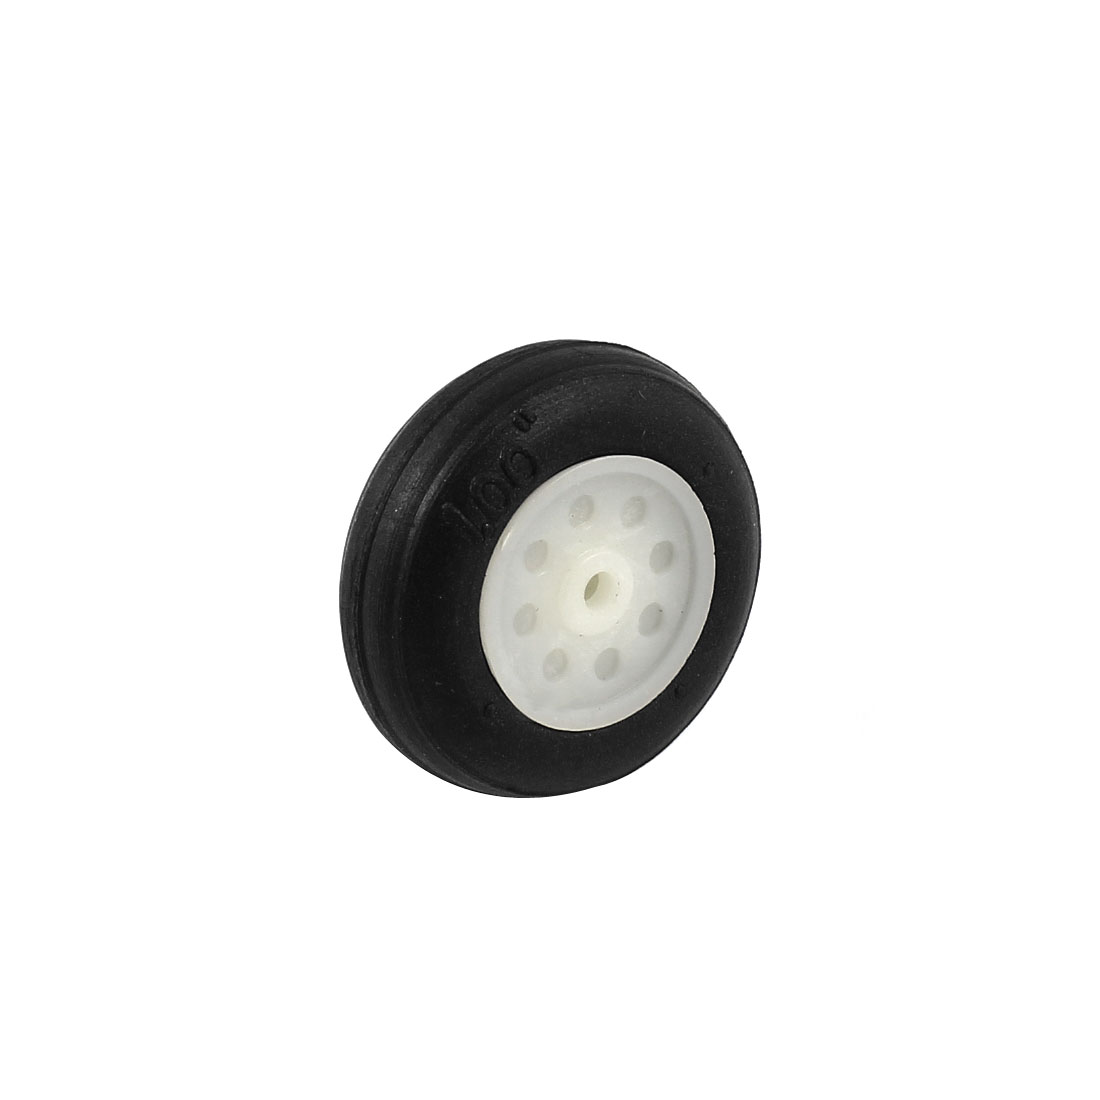 "White Plastic Hub Black PU Wheel 25mm 1"" Diameter for RC Aircraft Model Toy"